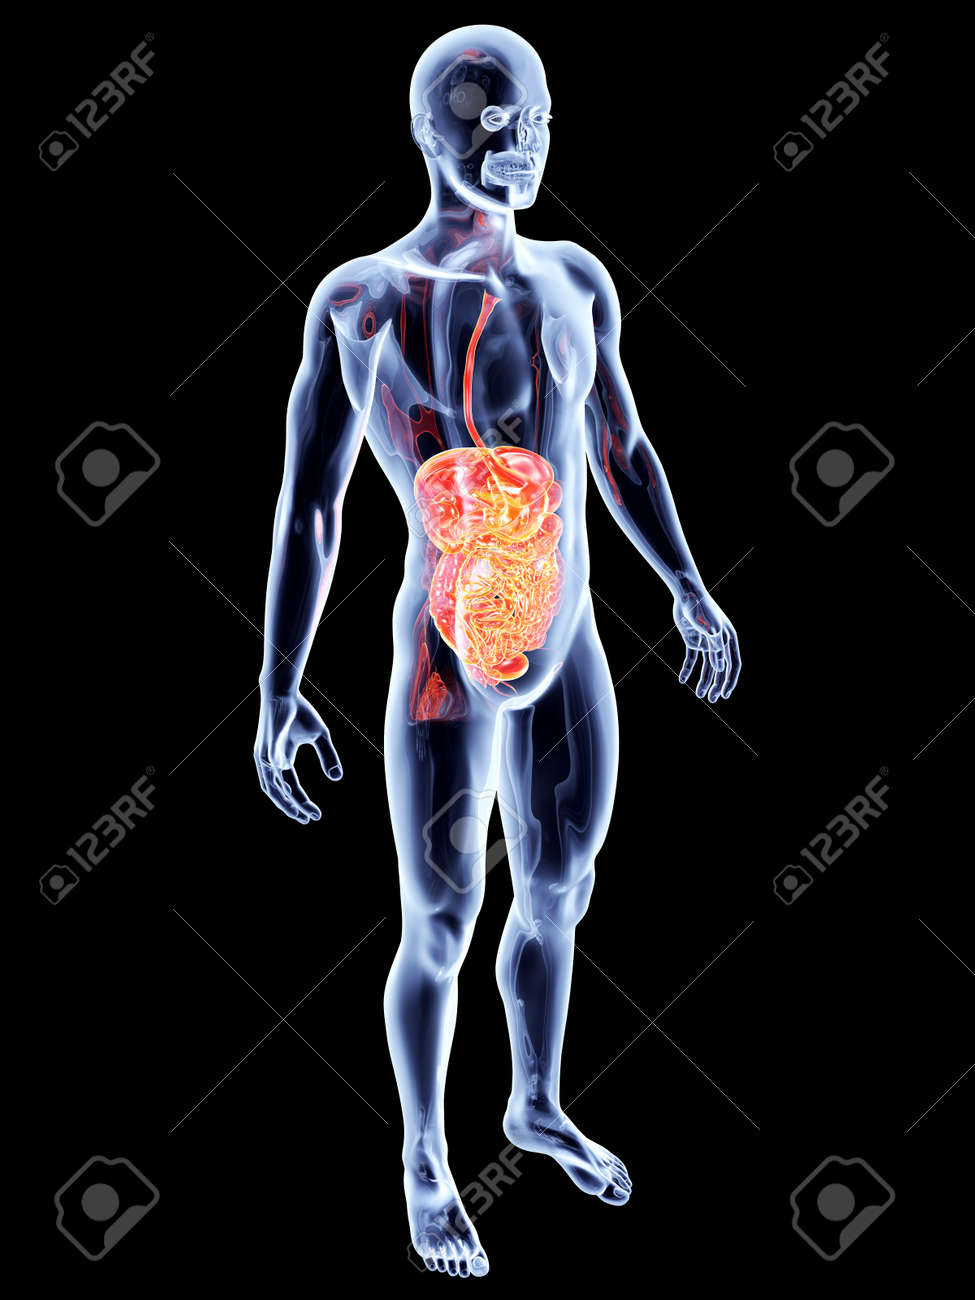 The Intestines 3d Rendered Anatomical Illustration Stock Photo